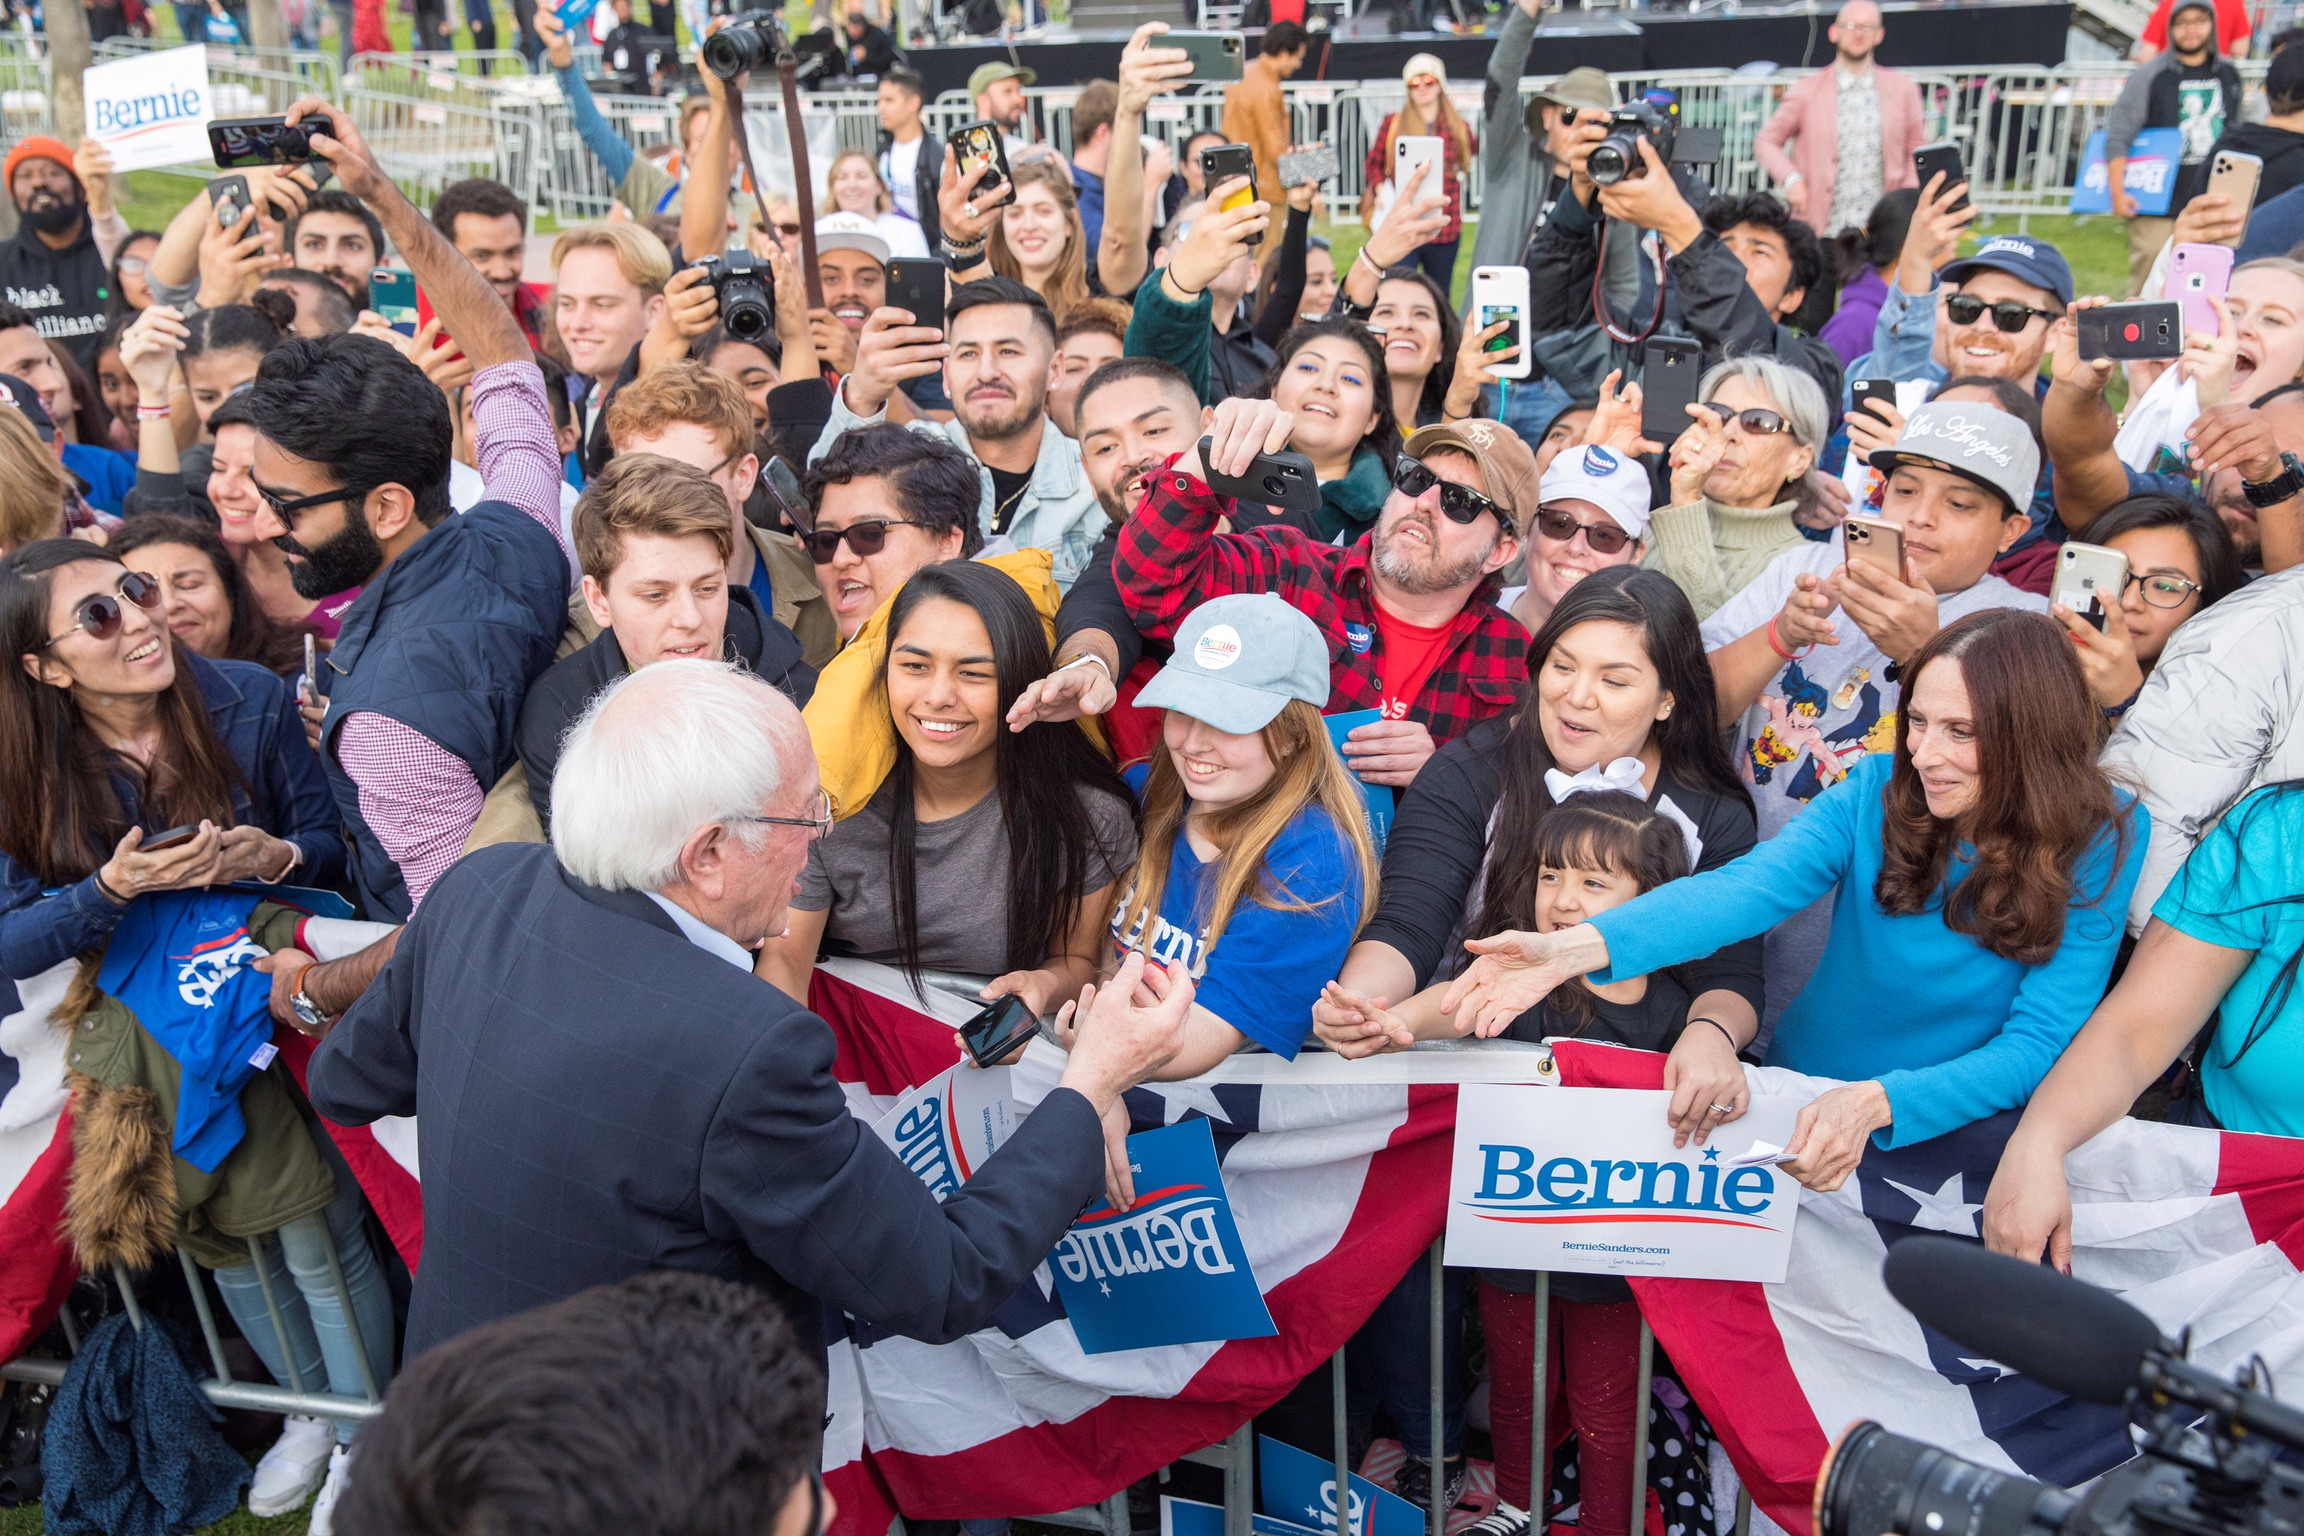 U.S. Sen Bernie Sanders greets supporters during a campaign rally at Venice Beach in Los Angeles, California, U.S., Dec. 21, 2019. REUTERS/Monica Almeida